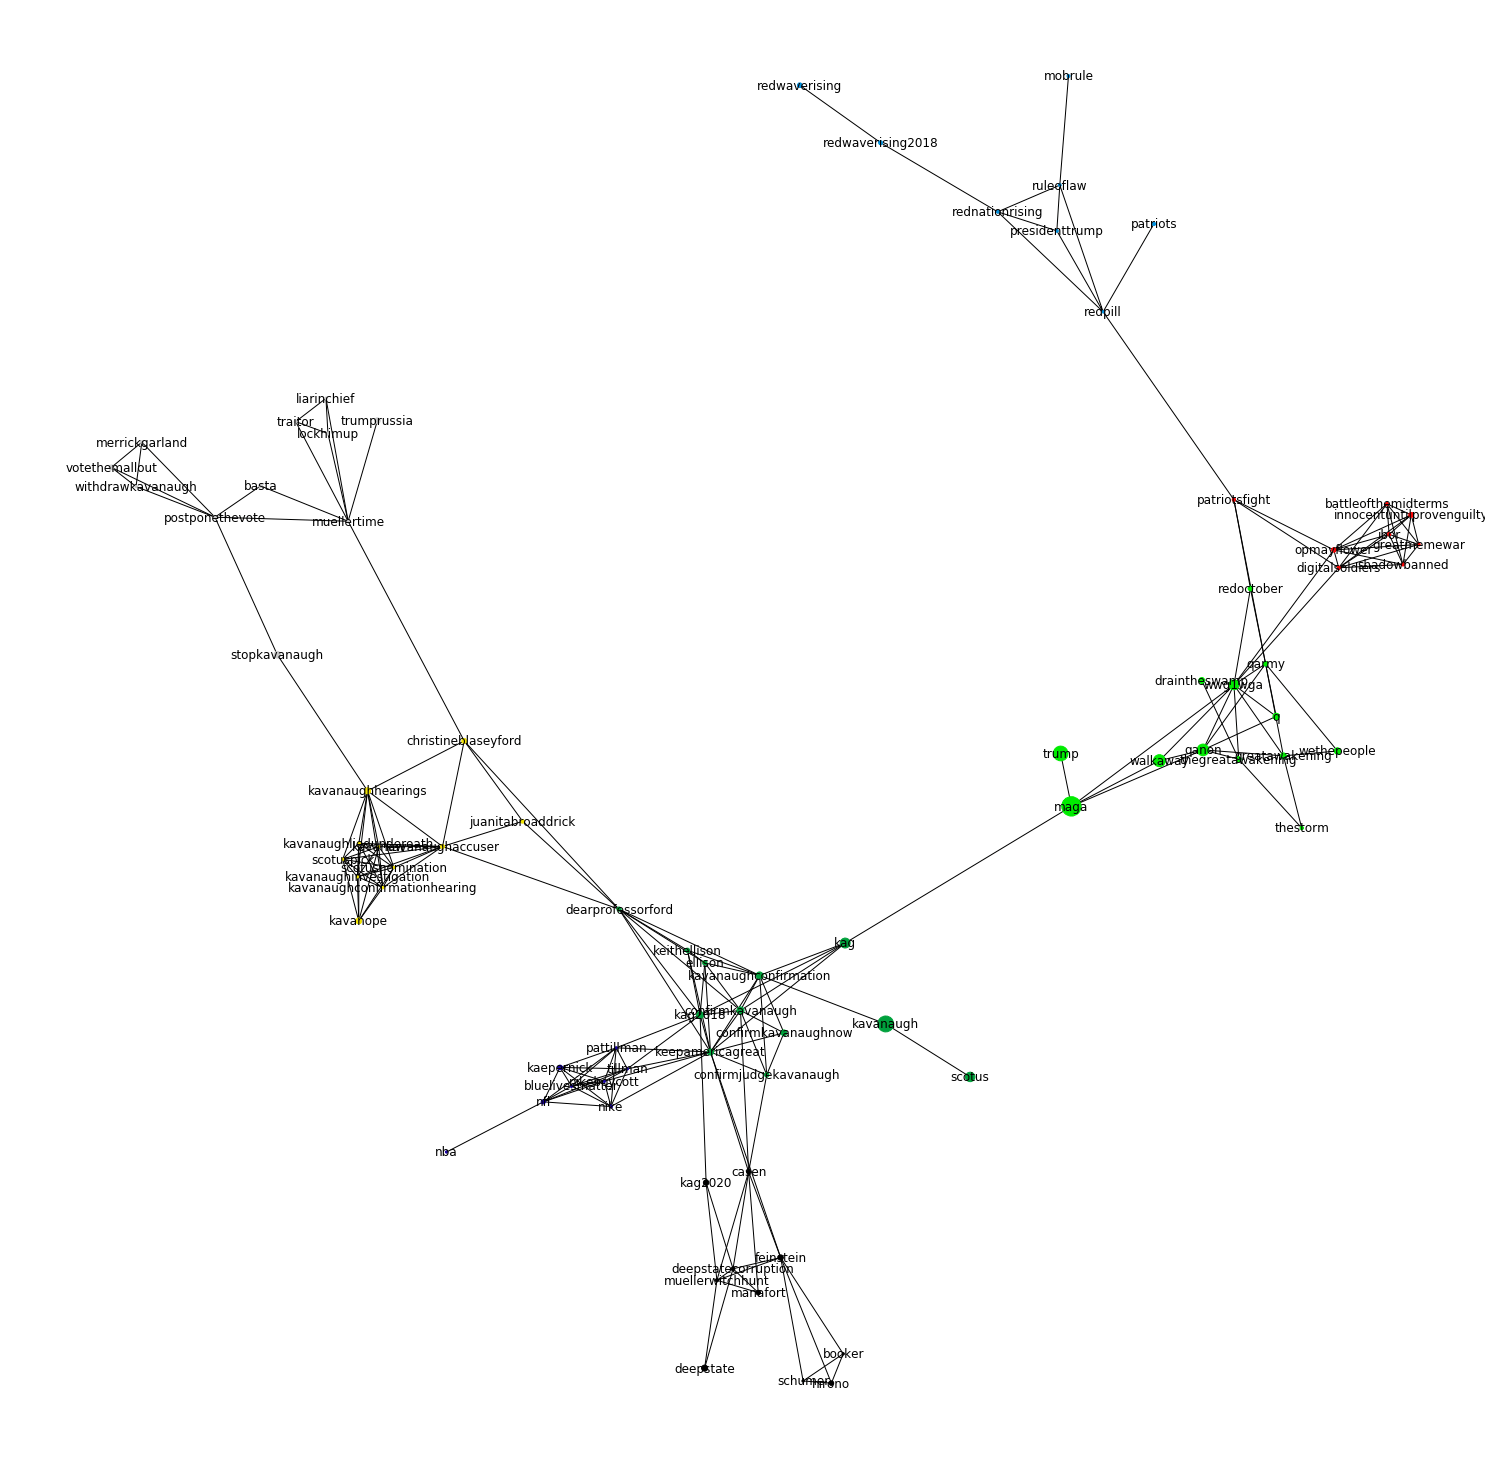 Semantic Network Analysis of Ideological Communities on